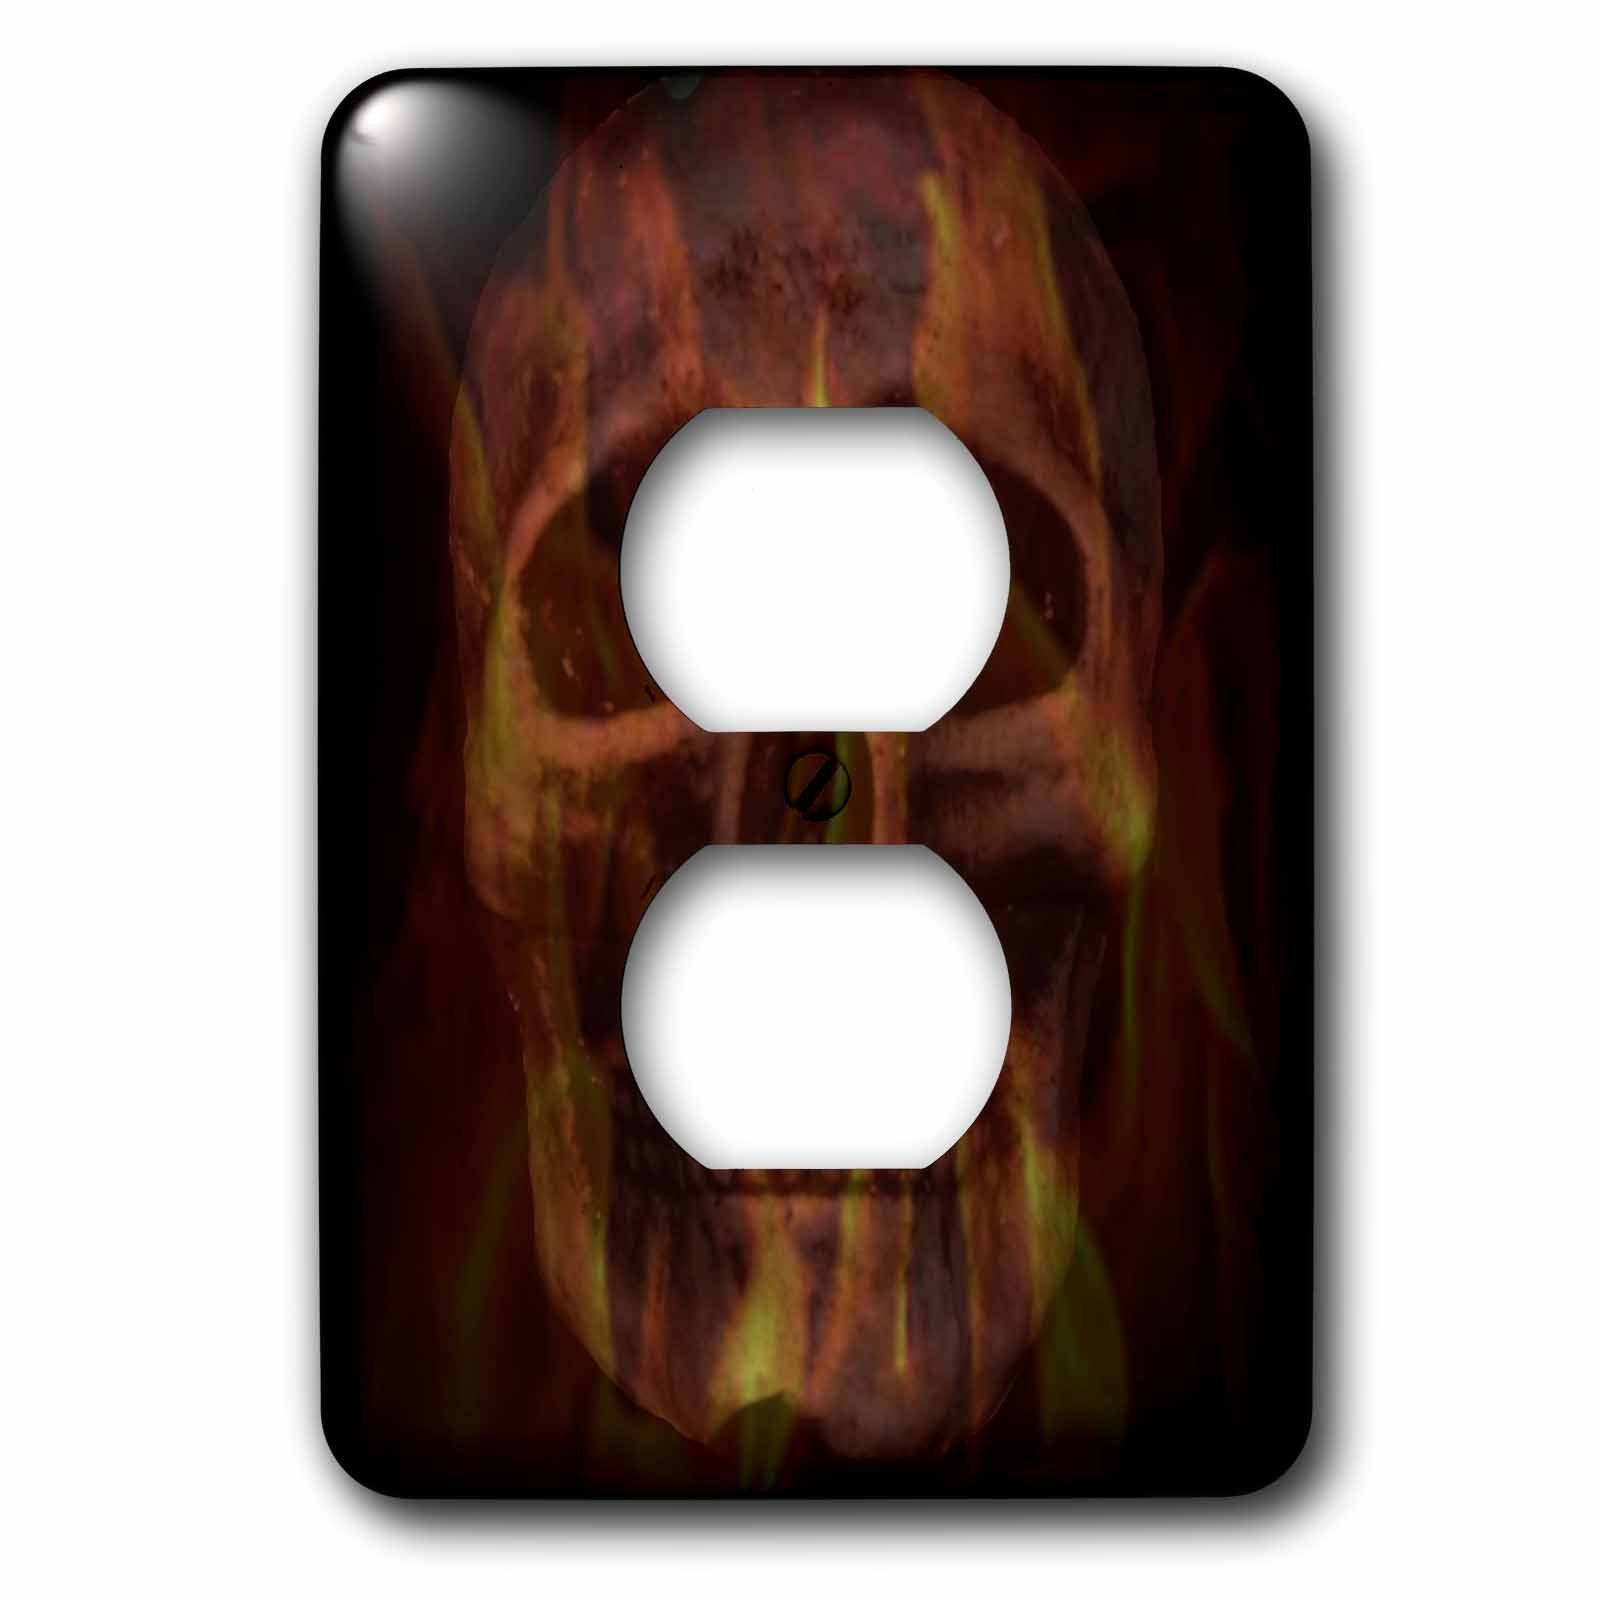 3dRose WhiteOaks Photography and Artwork - Skulls - Fire Skull is an art piece I did of skulls and overlaying fire - Light Switch Covers - 2 plug outlet cover (lsp_265363_6)